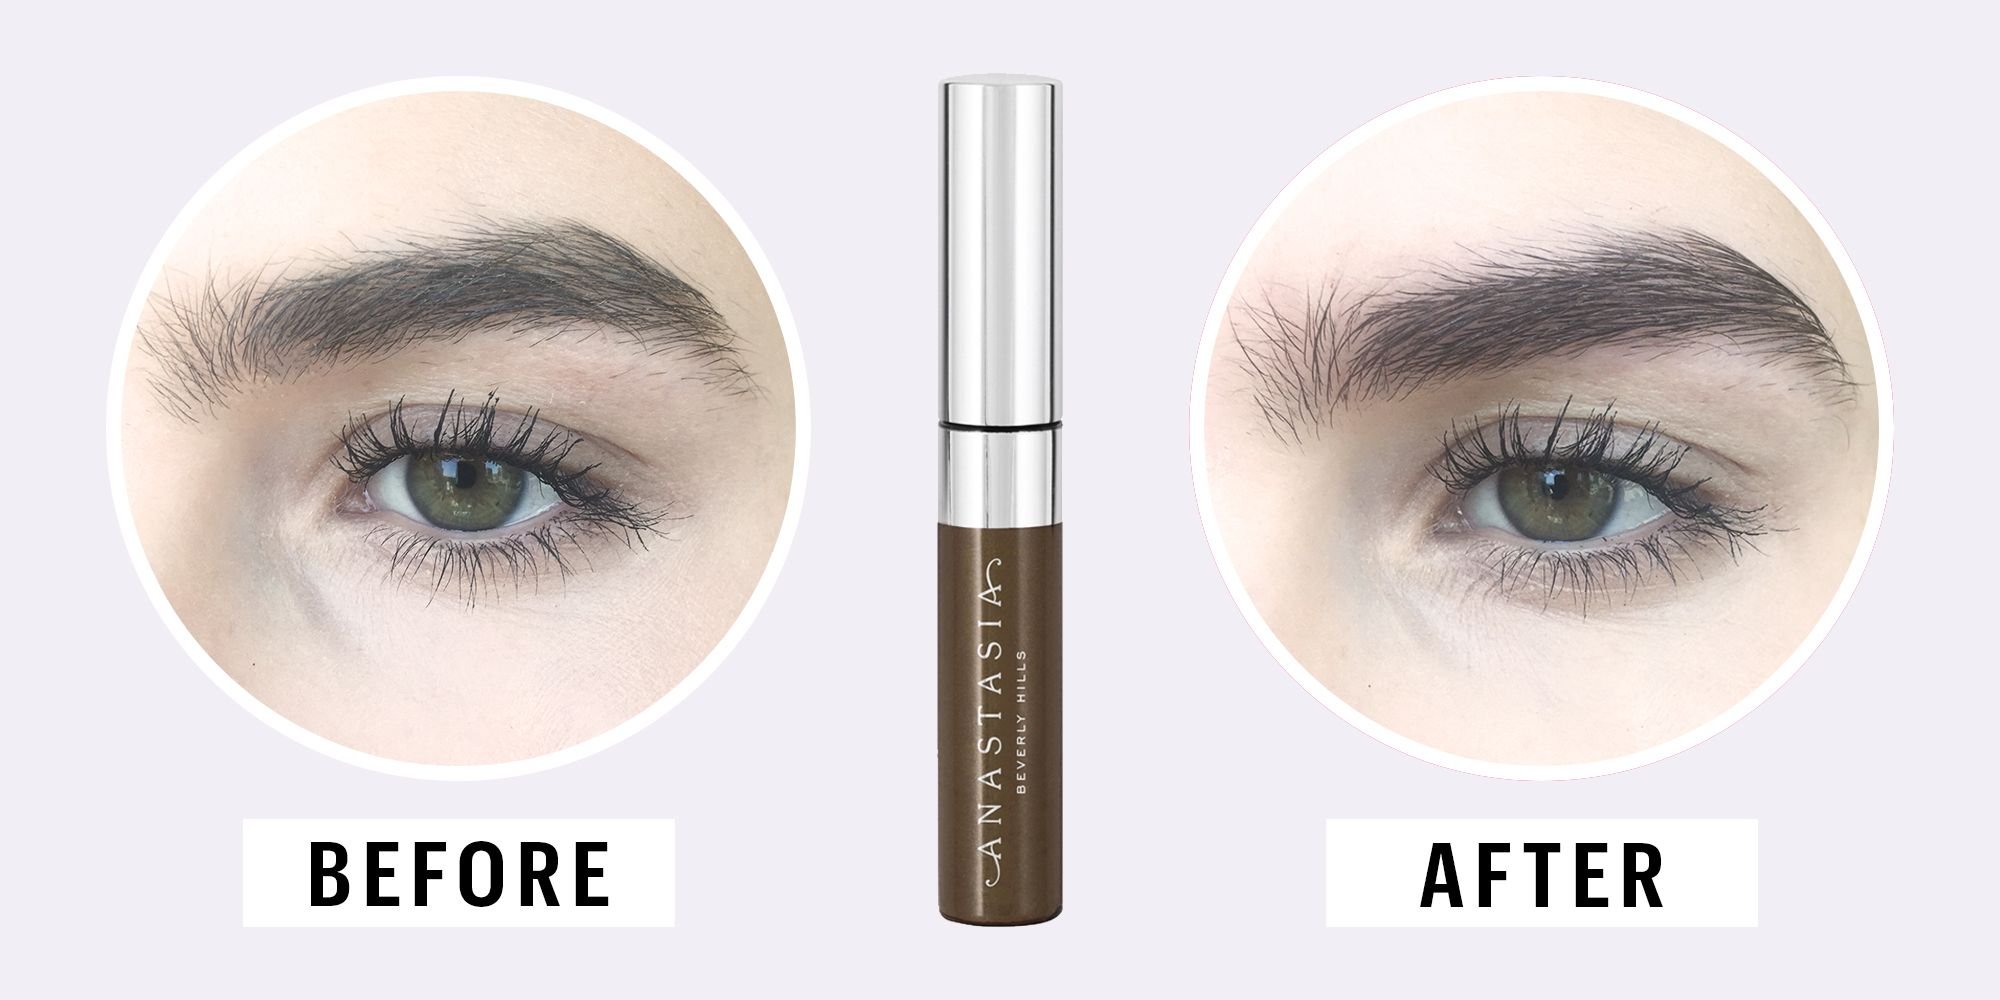 """<p>For such a chubby brush, you'd think it would give me some majorly amped-up brows, but the size actually made it difficult to hone in on feathery hairs, and the sheer formula barely made a dent in my already-dark brows. Still, I'd try this if you're a brow newb who wants a super-minimal finish.</p><p><i data-redactor-tag=""""i"""">Anastasia Beverly Hills Tinted Brow Gel in Espresso, $22</i></p><p><strong data-redactor-tag=""""strong"""">BUY IT: </strong><a href=""""http://www.sephora.com/tinted-brow-gel-P187202""""><strong data-redactor-tag=""""strong"""">sephora.com</strong></a><strong data-redactor-tag=""""strong"""">.&nbsp&#x3B;</strong></p>"""